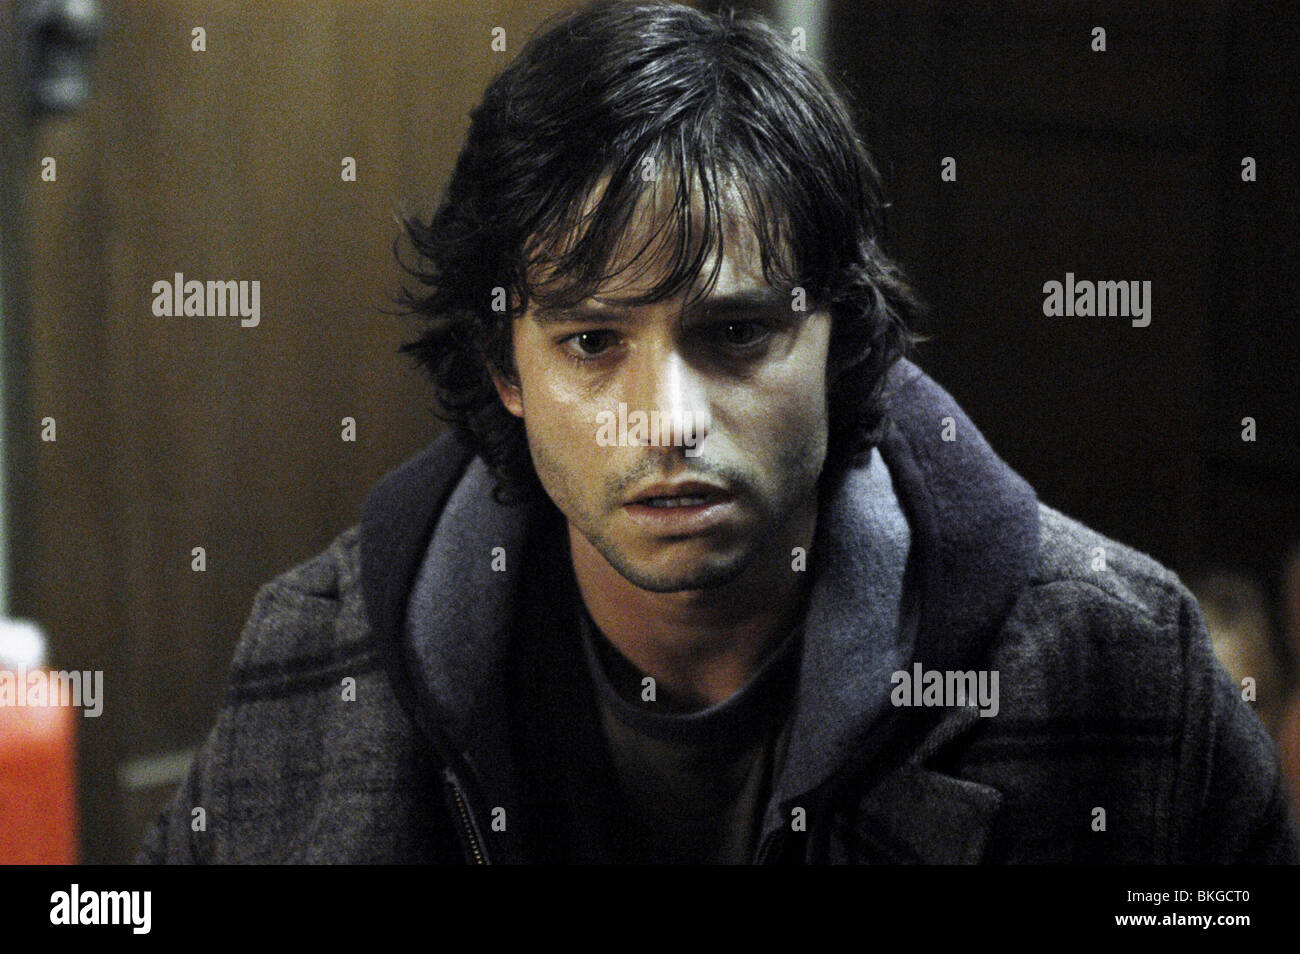 The Grudge 2004 Jason Behr Stock Photo Alamy